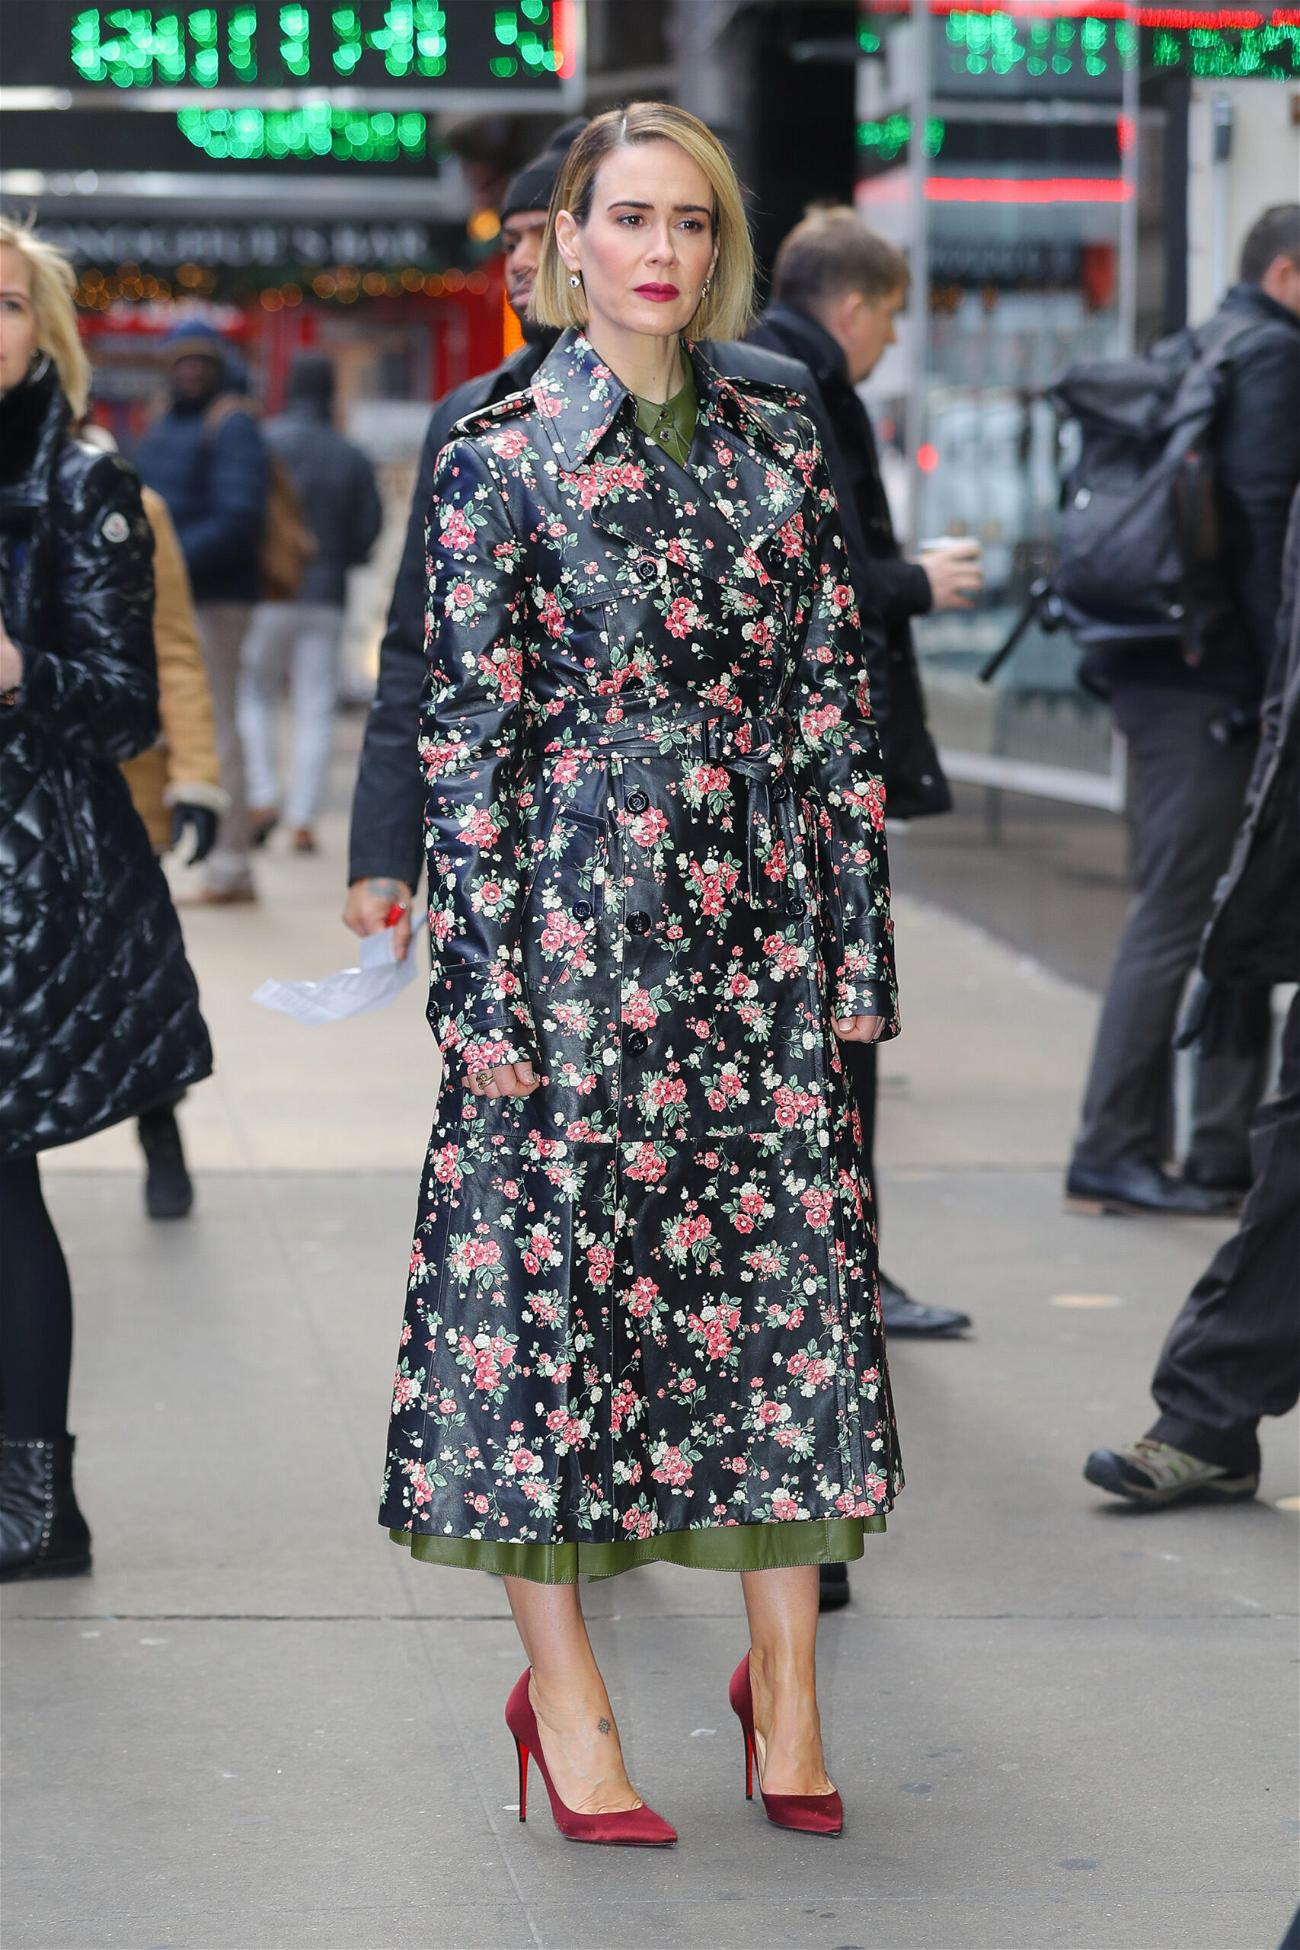 Sarah Paulson wore a floral Michael Kors Trench Coat while leaving the Good Morning America on Thursday Morning in NYC